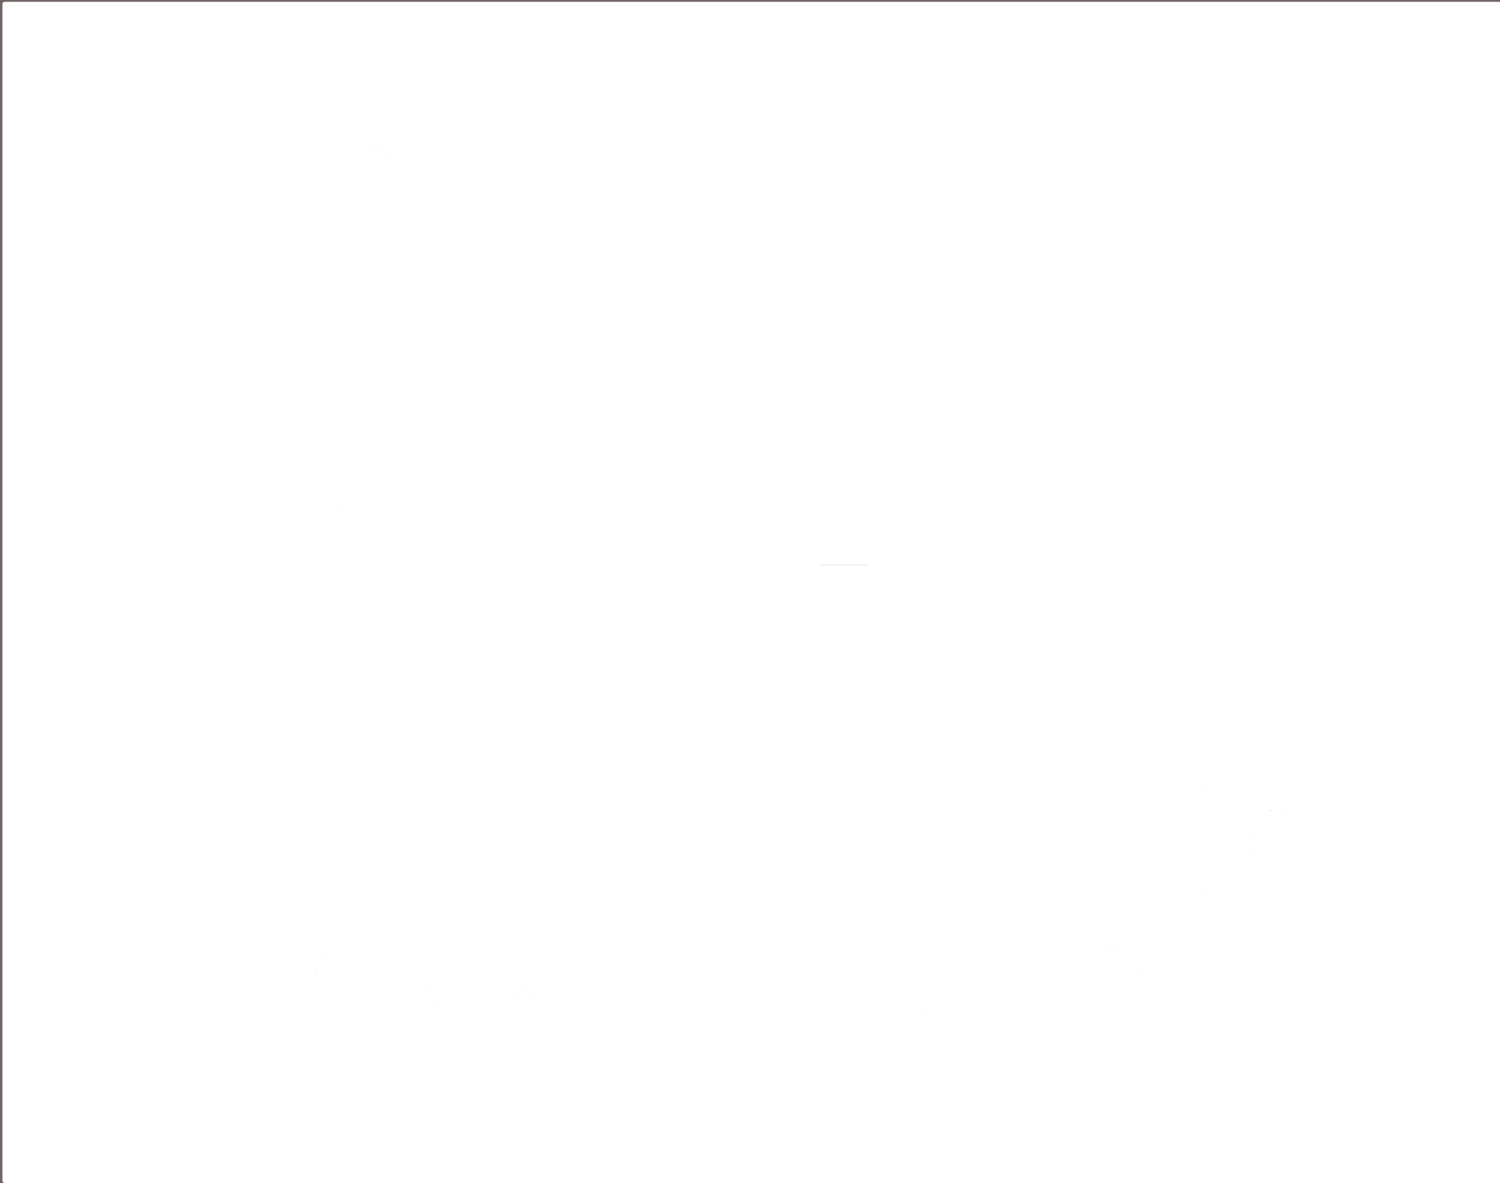 Excel Brokerage